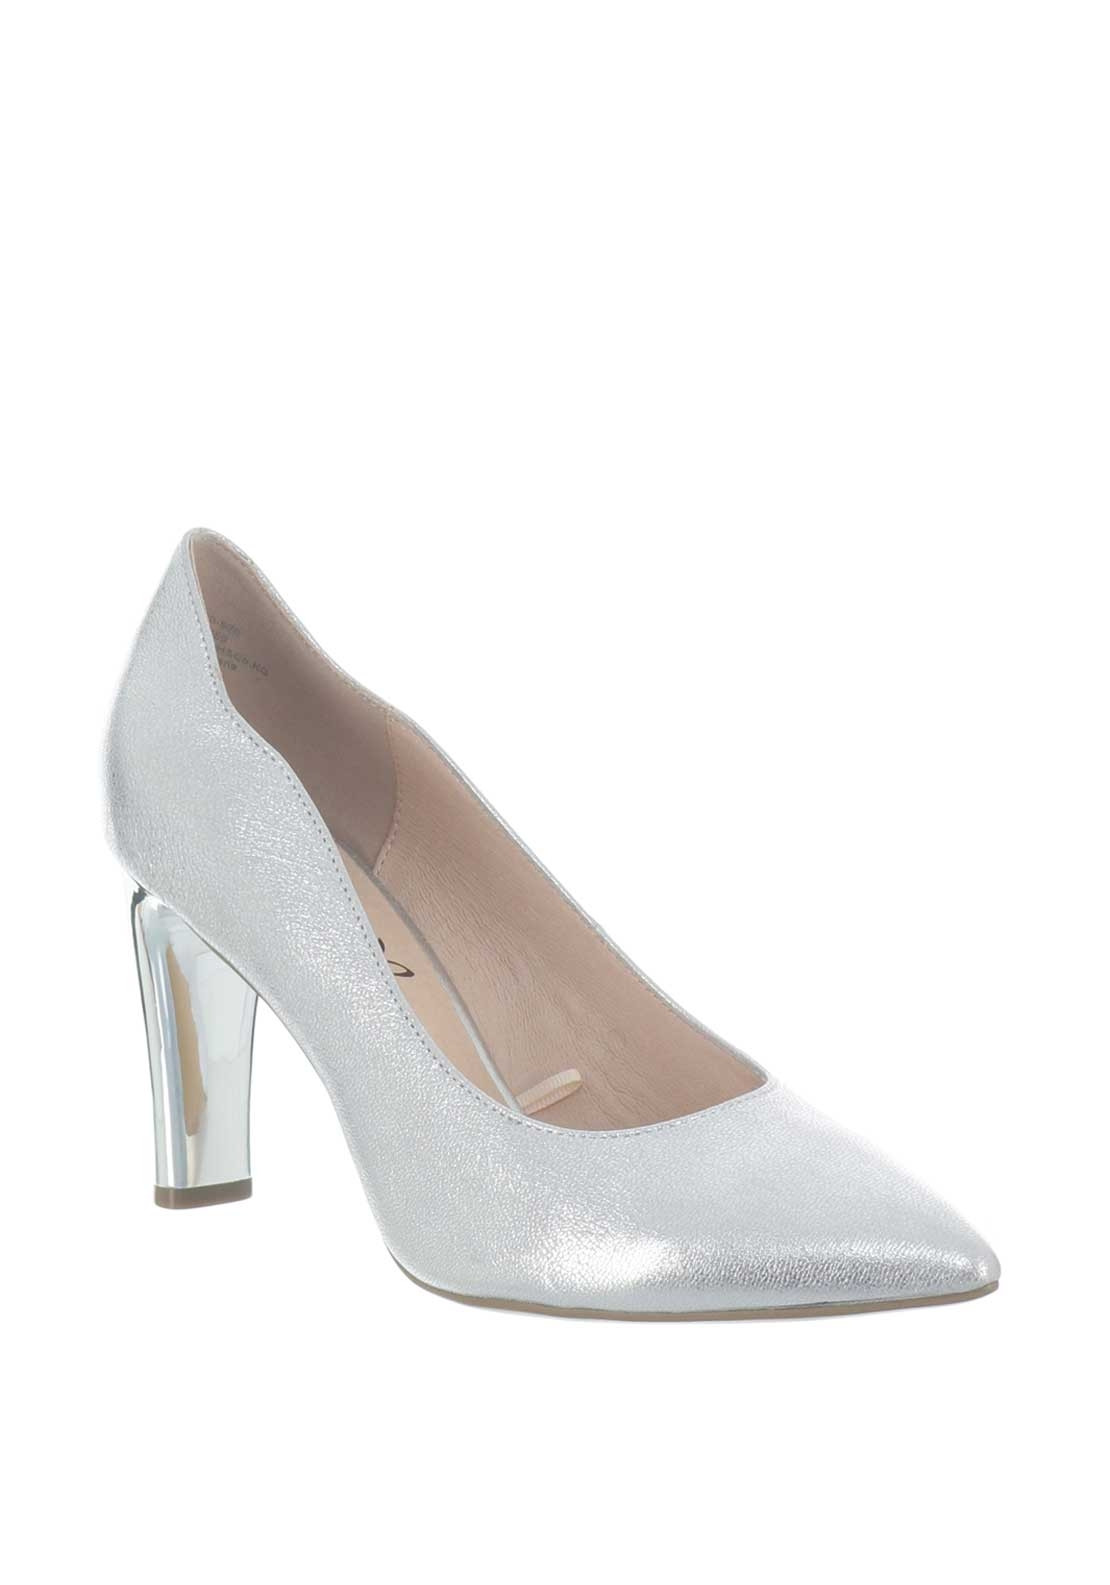 a64464885c9 Caprice Leather Metallic Pointed Toe Heeled Shoes